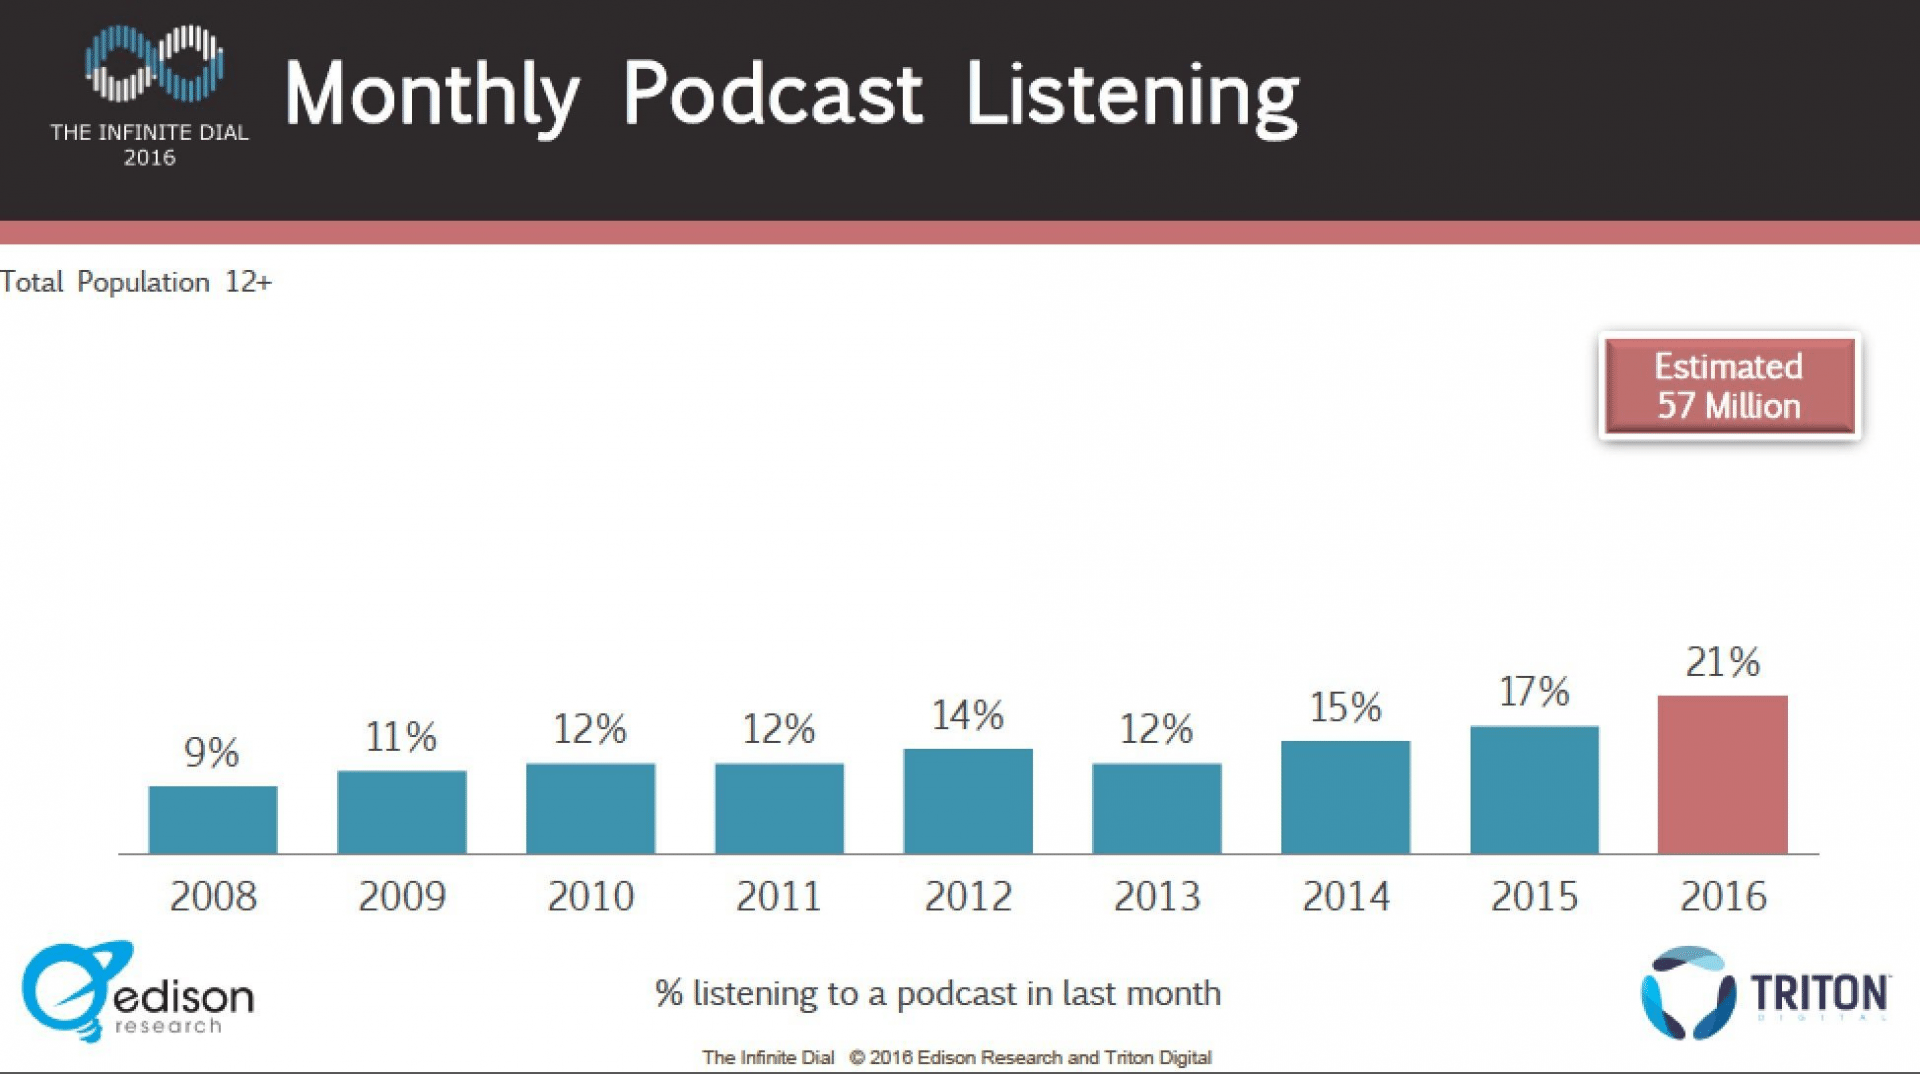 monthly podcast listening example